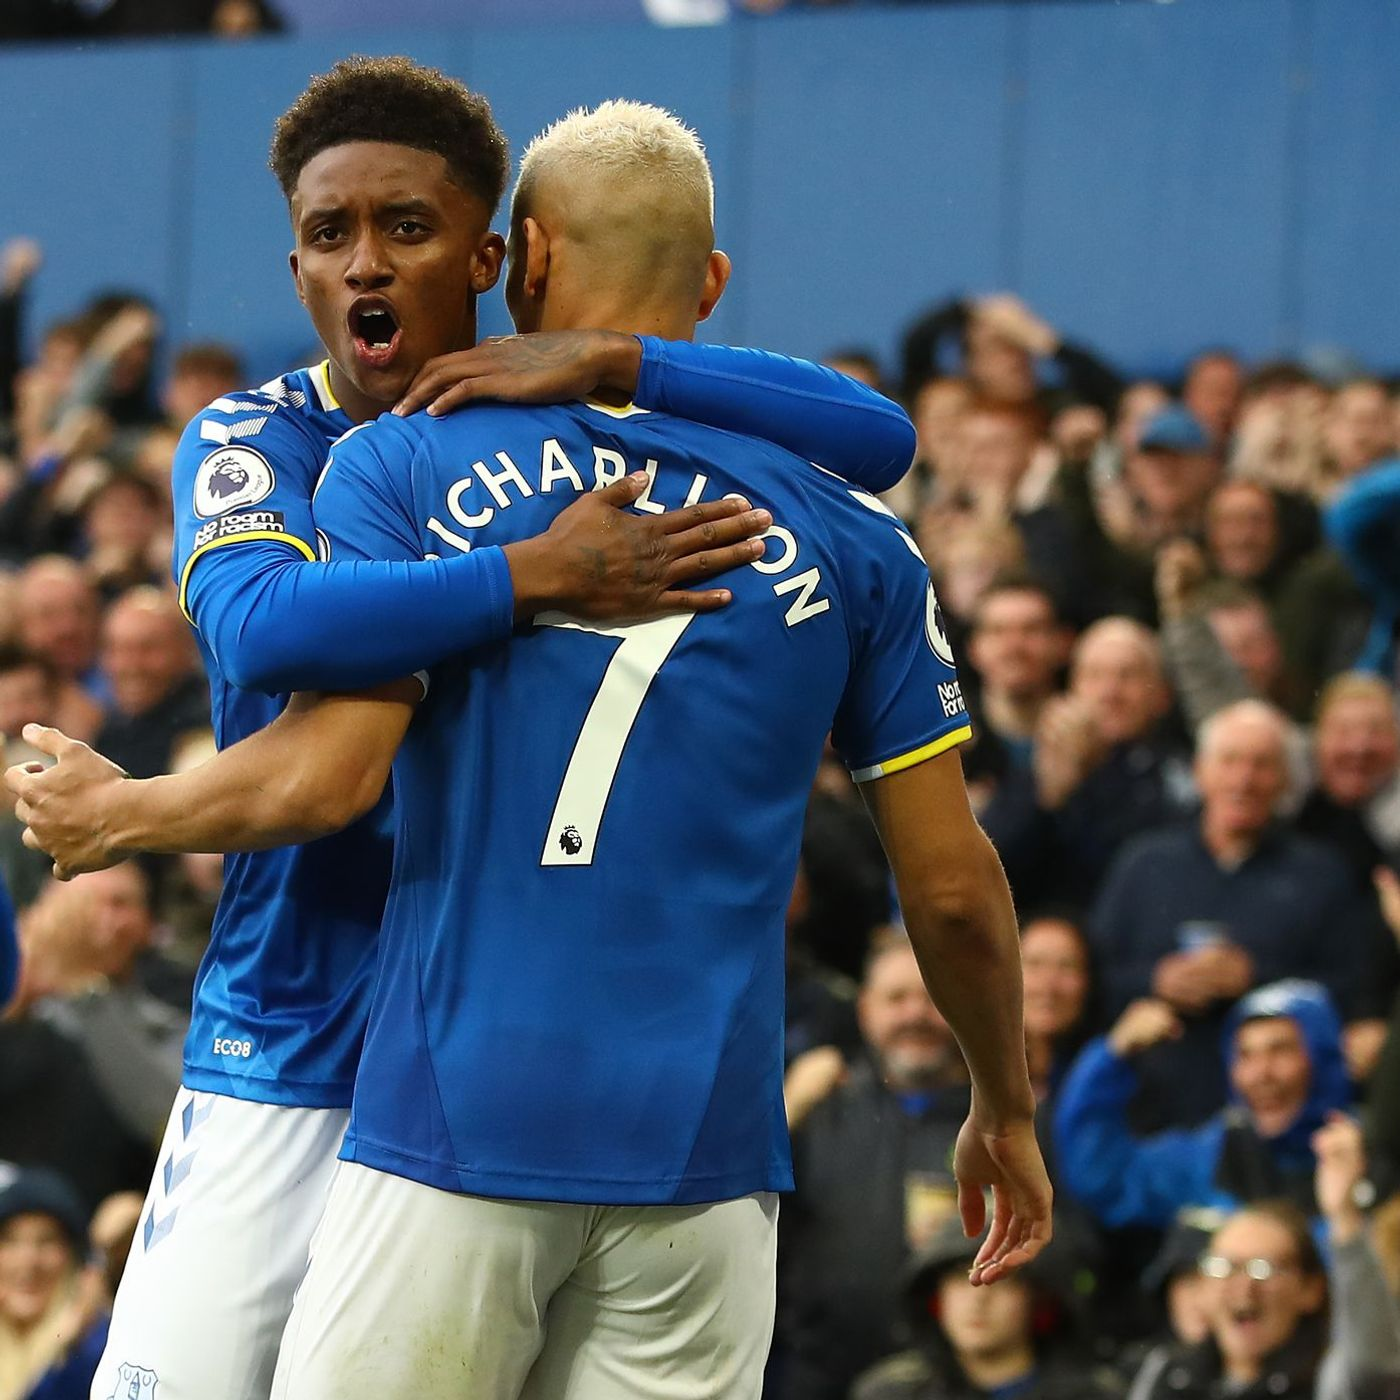 Royal Blue: Everton's transfer priorities as Gray & Townsend show promise as Blues begin with win